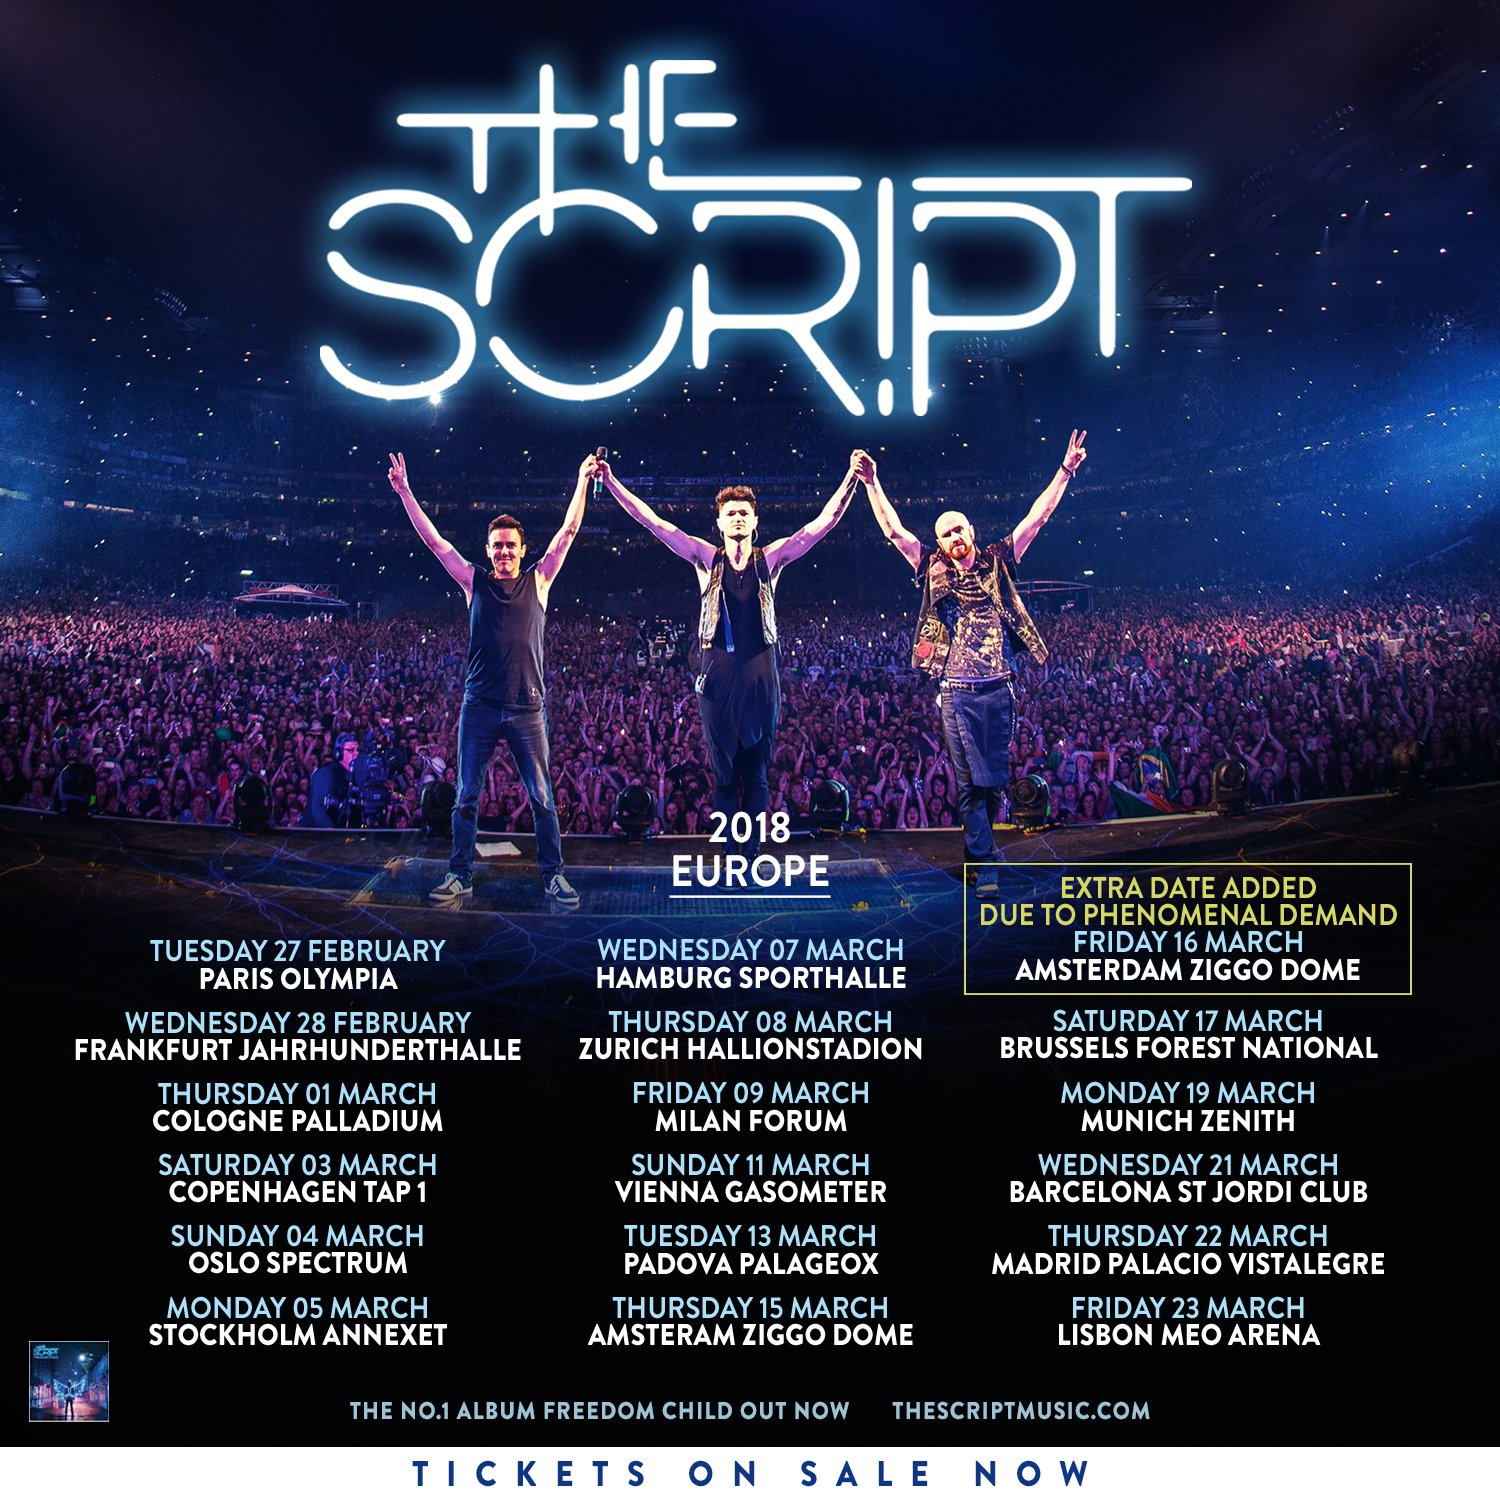 RT @thescript: 🇪🇺 Europe! Our #FreedomChildTour tickets are on sale now!! GO GO GO! https://t.co/87Ns2futgI https://t.co/x2gwwXVRzw